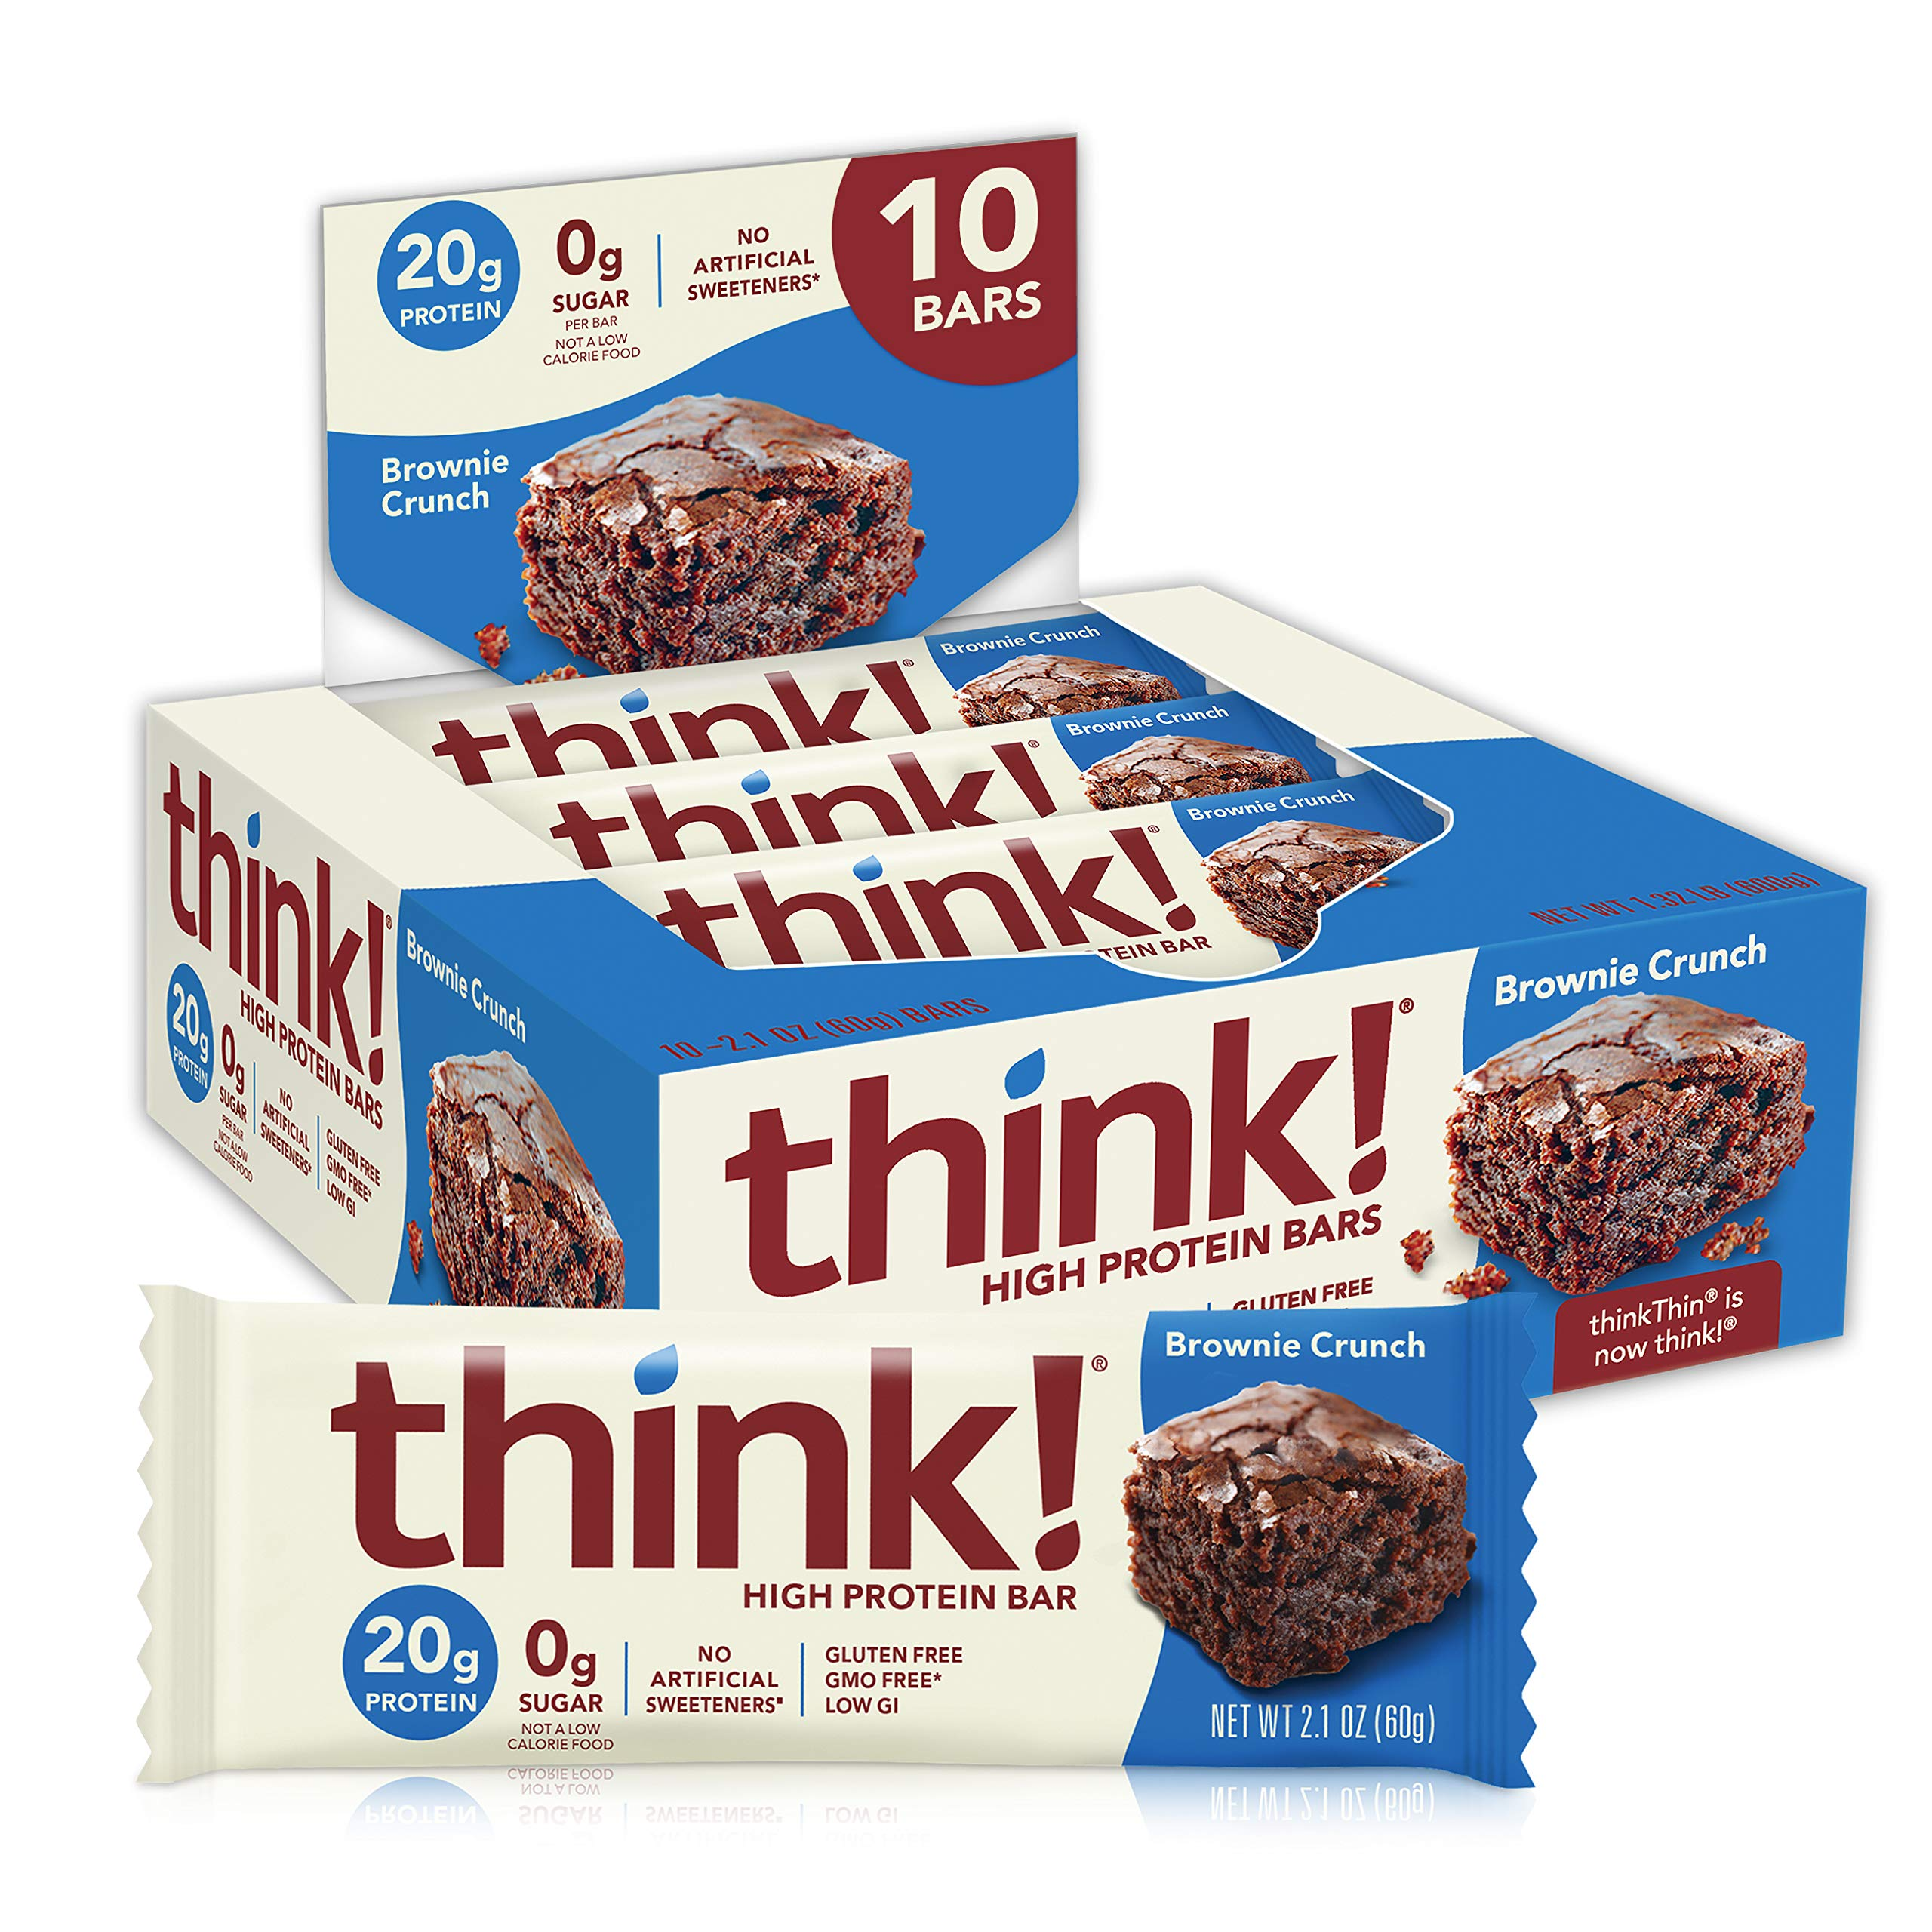 think! (thinkThin) High Protein Bars - Brownie Crunch, 20g Protein, 0g Sugar, No Artificial Sweeteners** Gluten Free, GMO Free*, 2.1 Ounce (10 Count) - Packaging May Vary